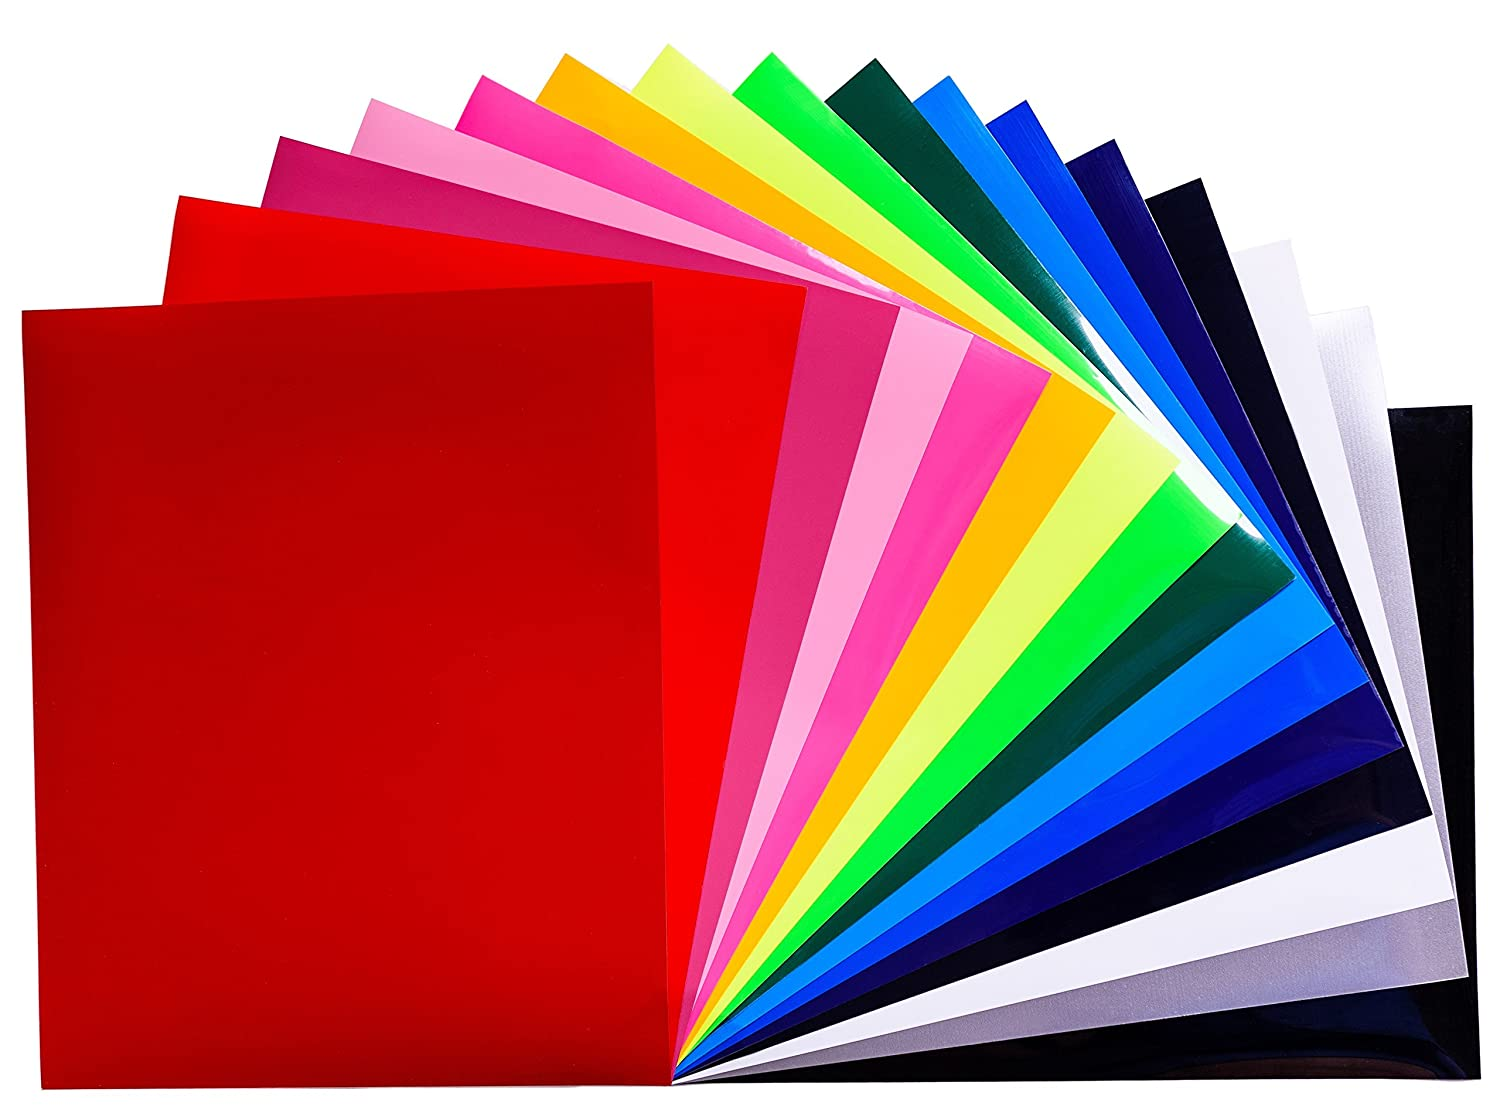 Roviko Heat Transfer Vinyl Bundle 12 x 10 – 20 Pack of Assorted Color Vinyl Sheets – Iron on PU HTV for T-Shirts – Suitable for Silhouette Cameo, Cricut and Heat Press Machine Tool